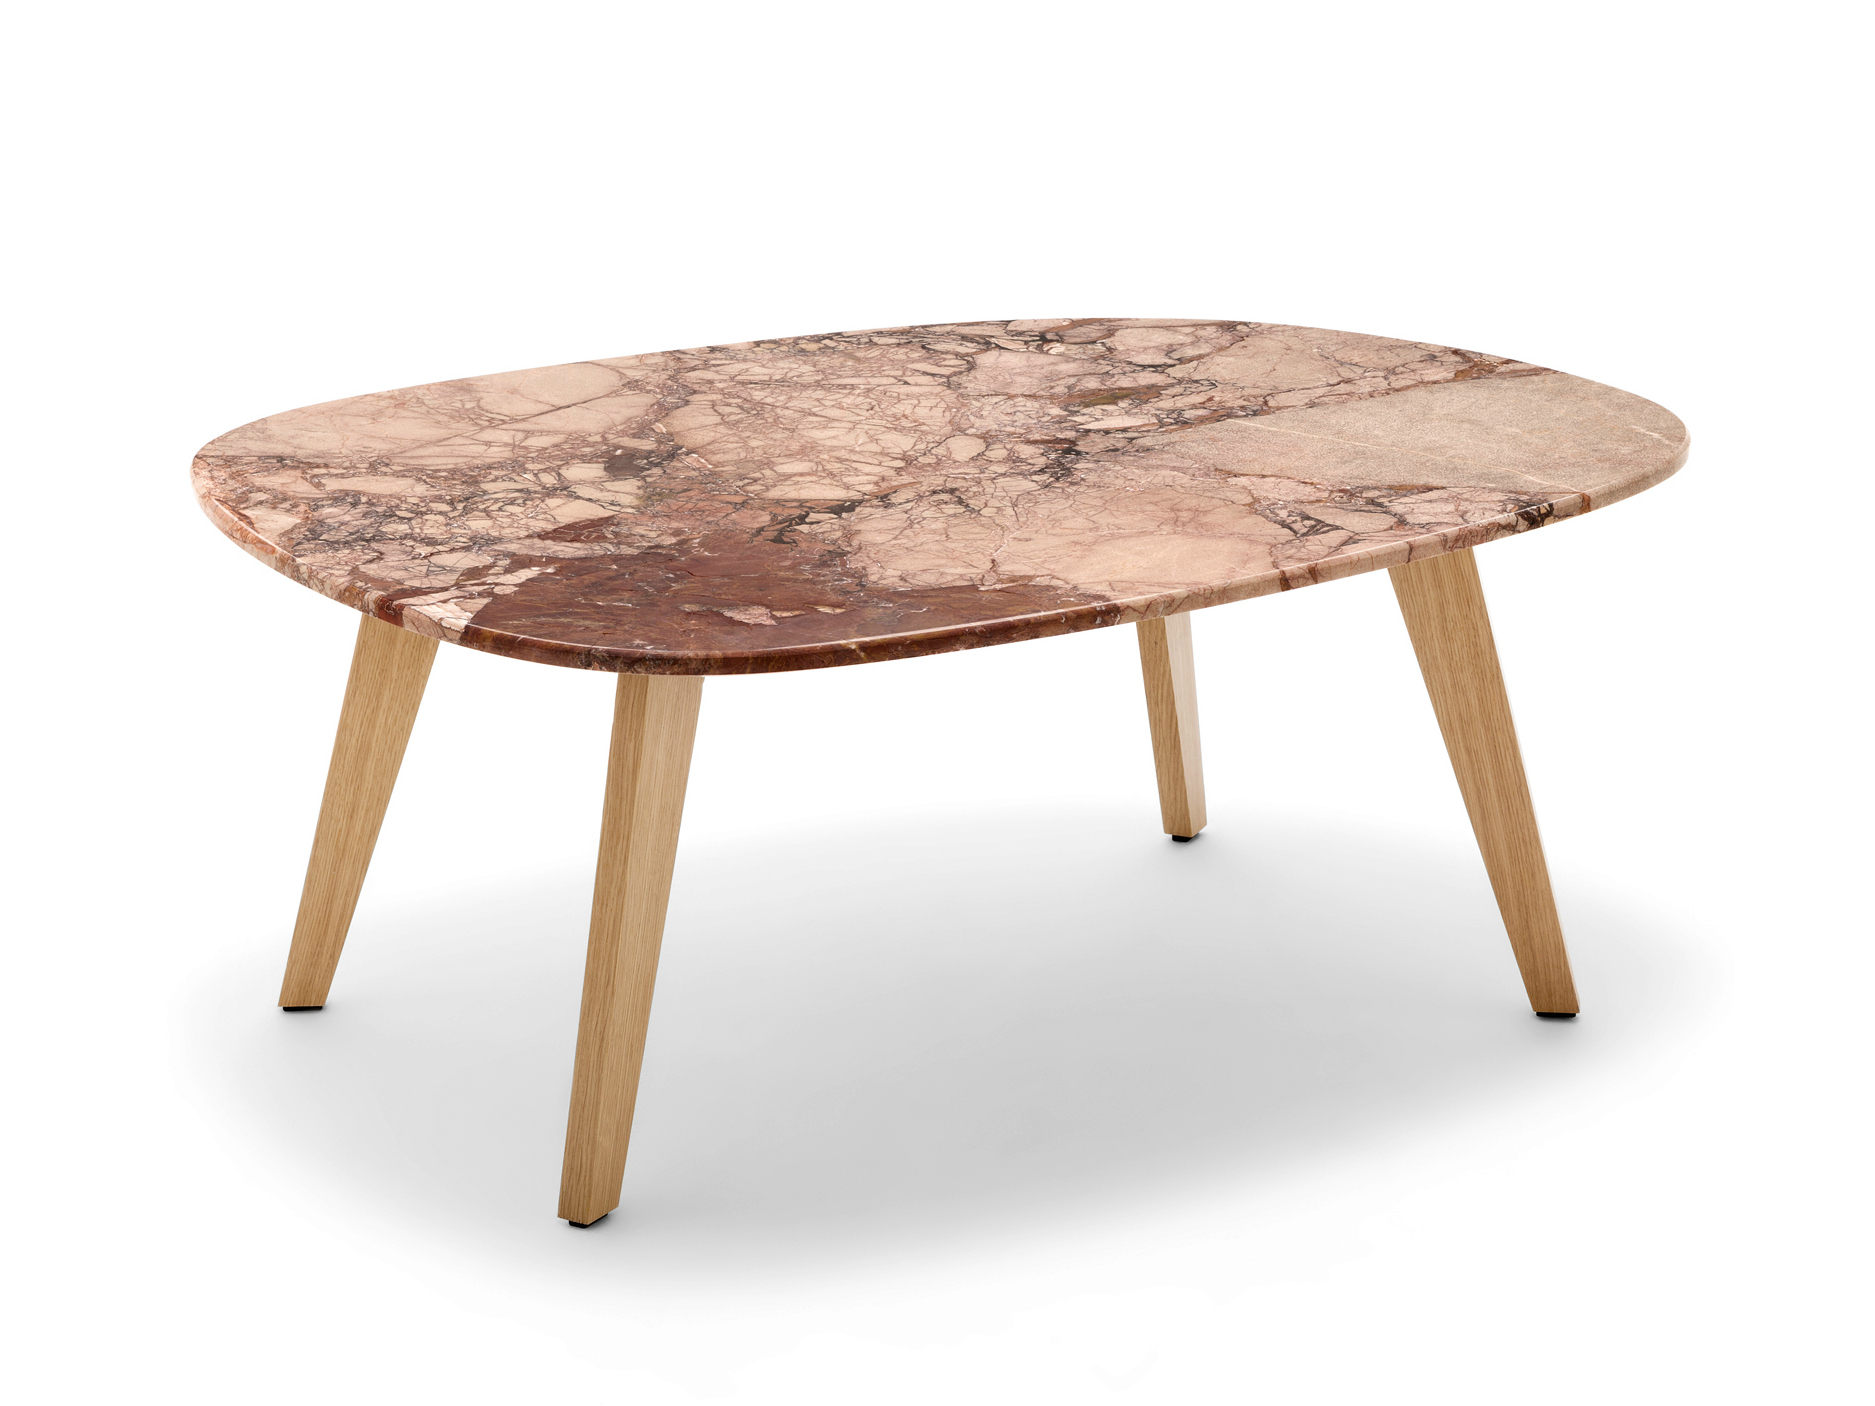 Low Natural Stone Coffee Table Rolf Benz 955 By Rolf Benz